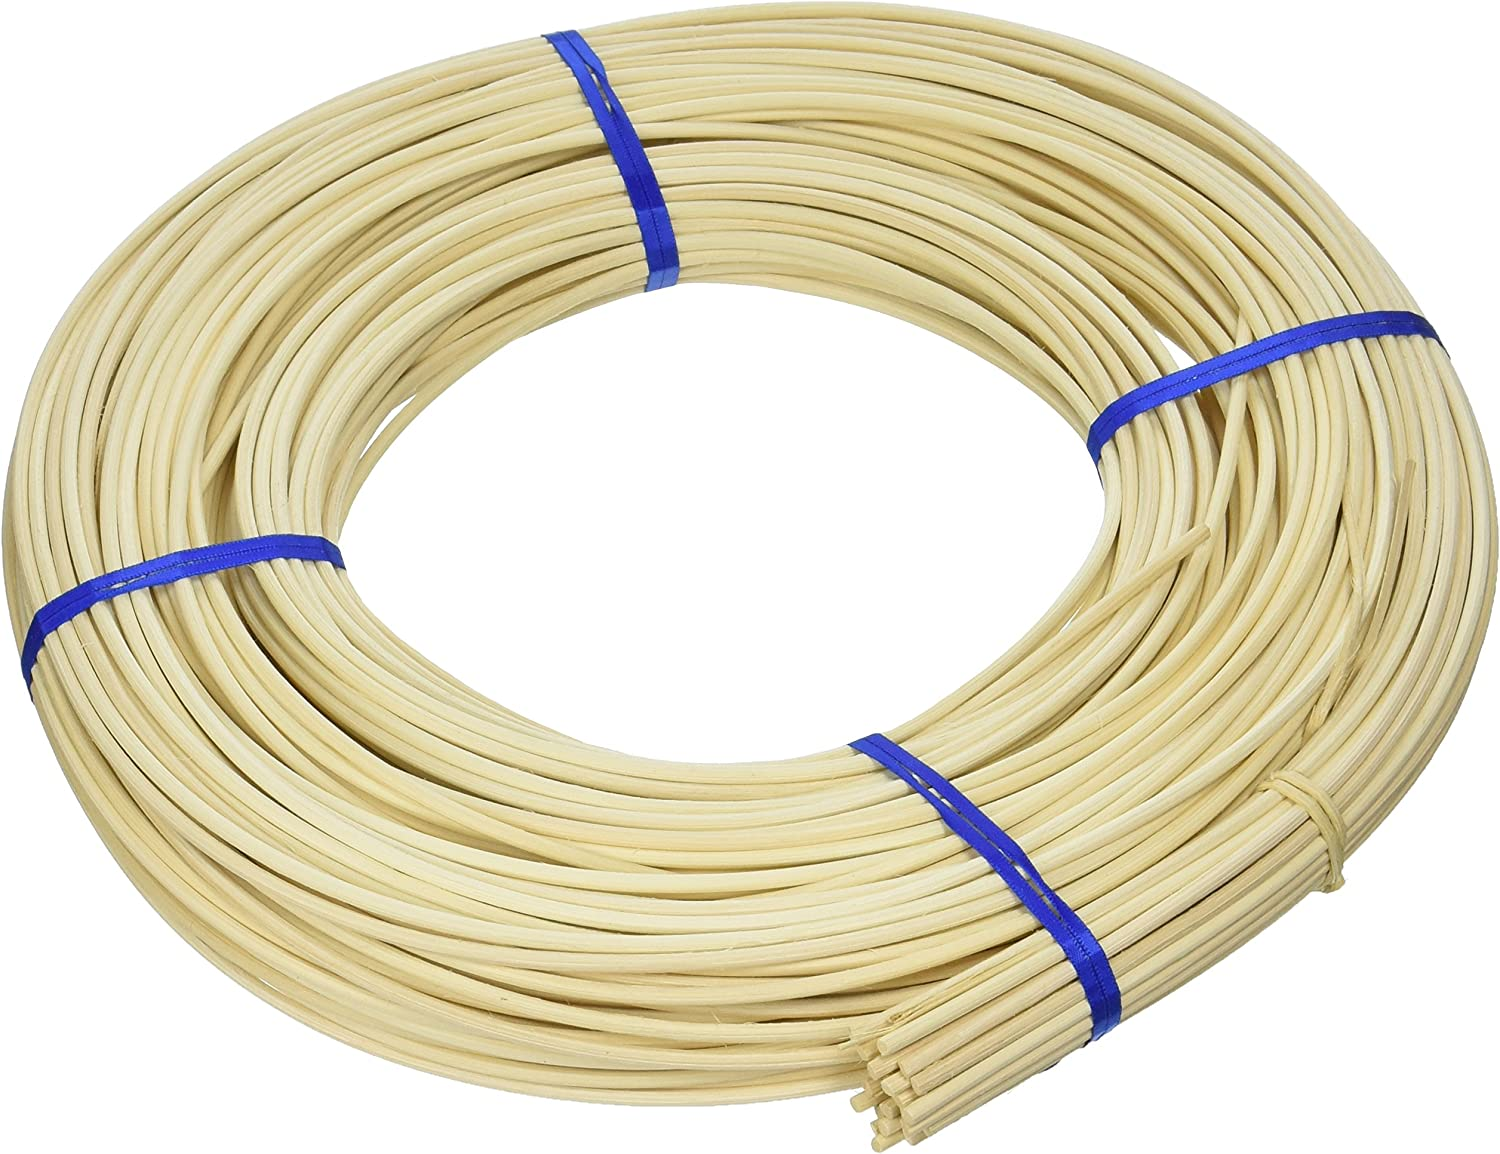 Approximately 360-Feet Commonwealth Basket Round Reed #5 3-1//4mm 1-Pound Coil